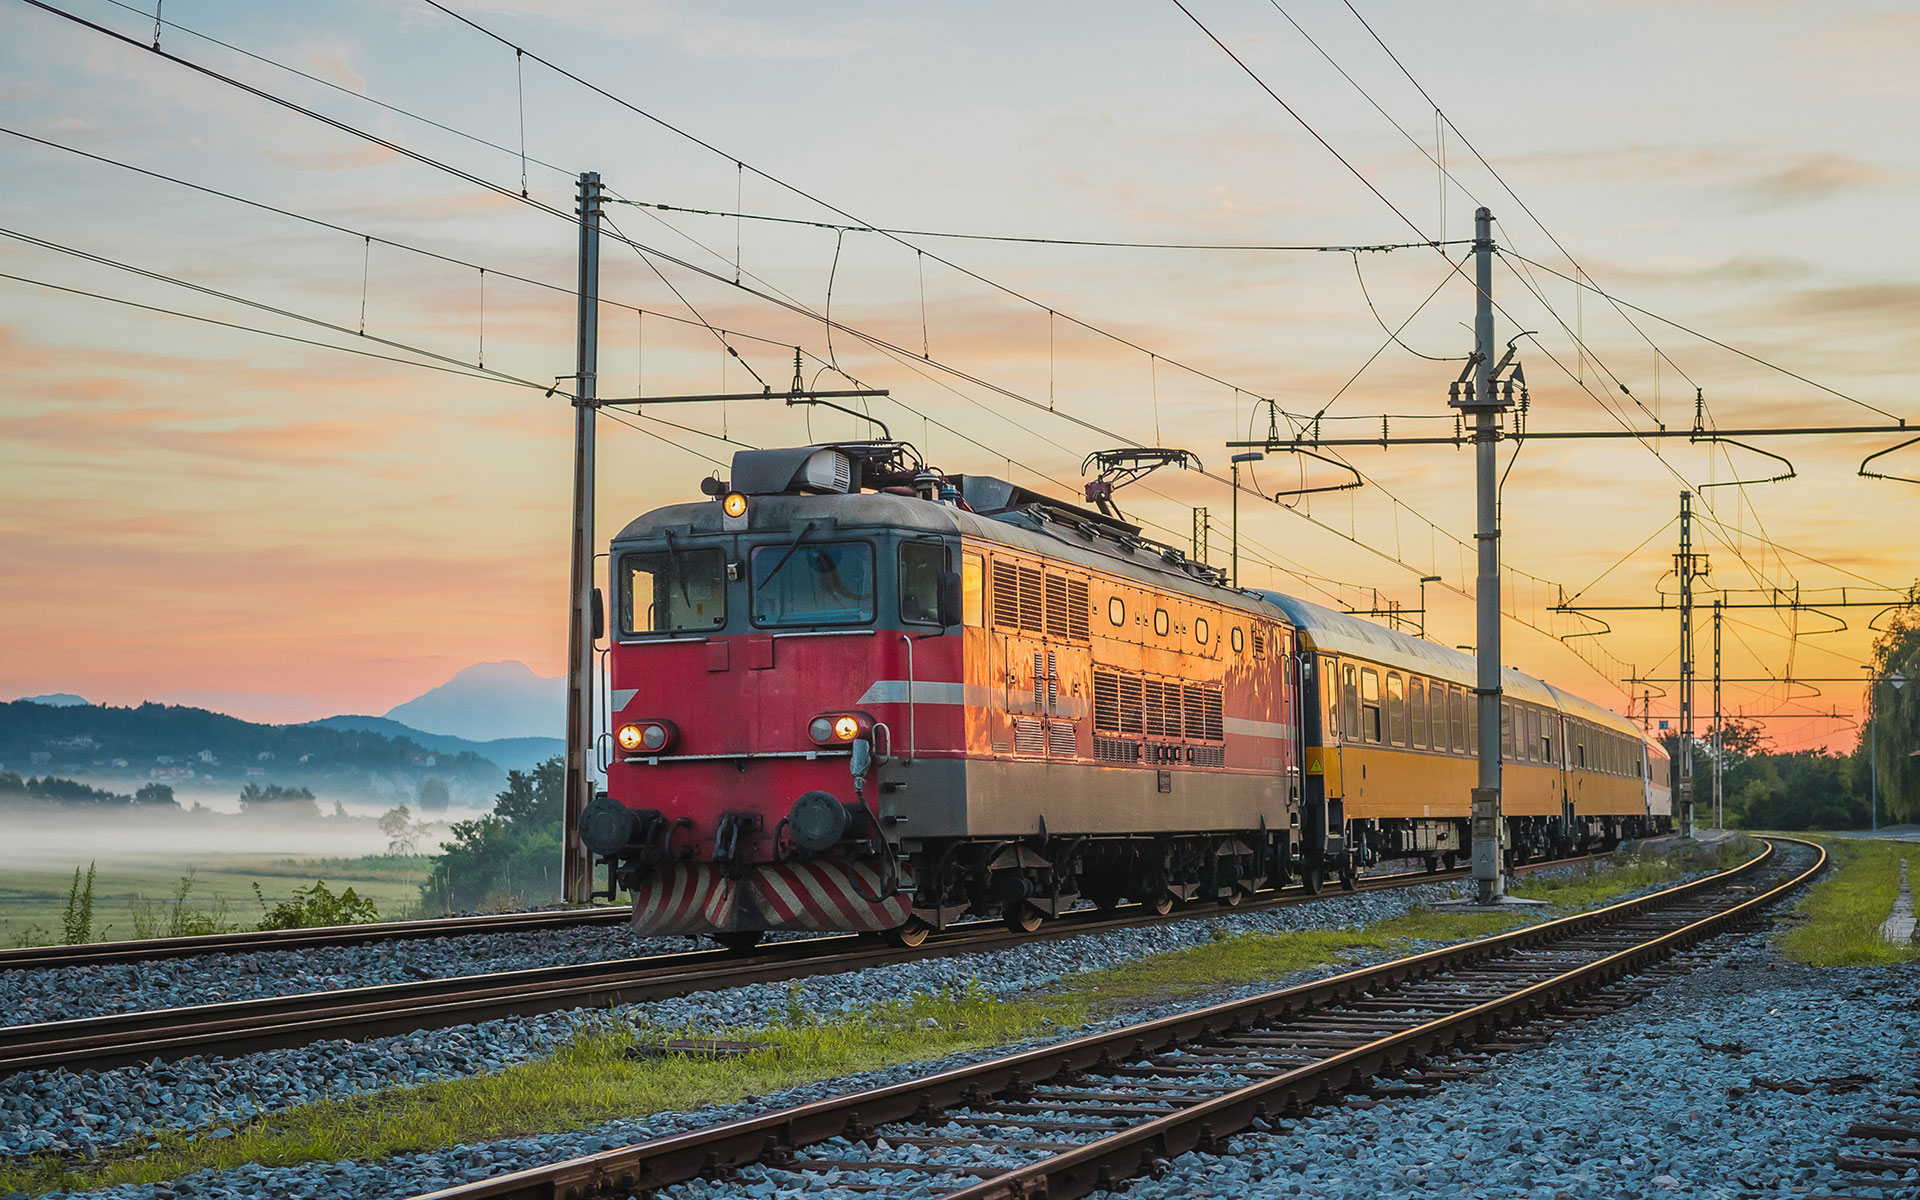 While many night train services are still on hold, the RegioJet overnight train from Prague to Rijeka, which is now running daily in both directions, is an entirely new route (photo © Anze Furlan / dreamstime.com).